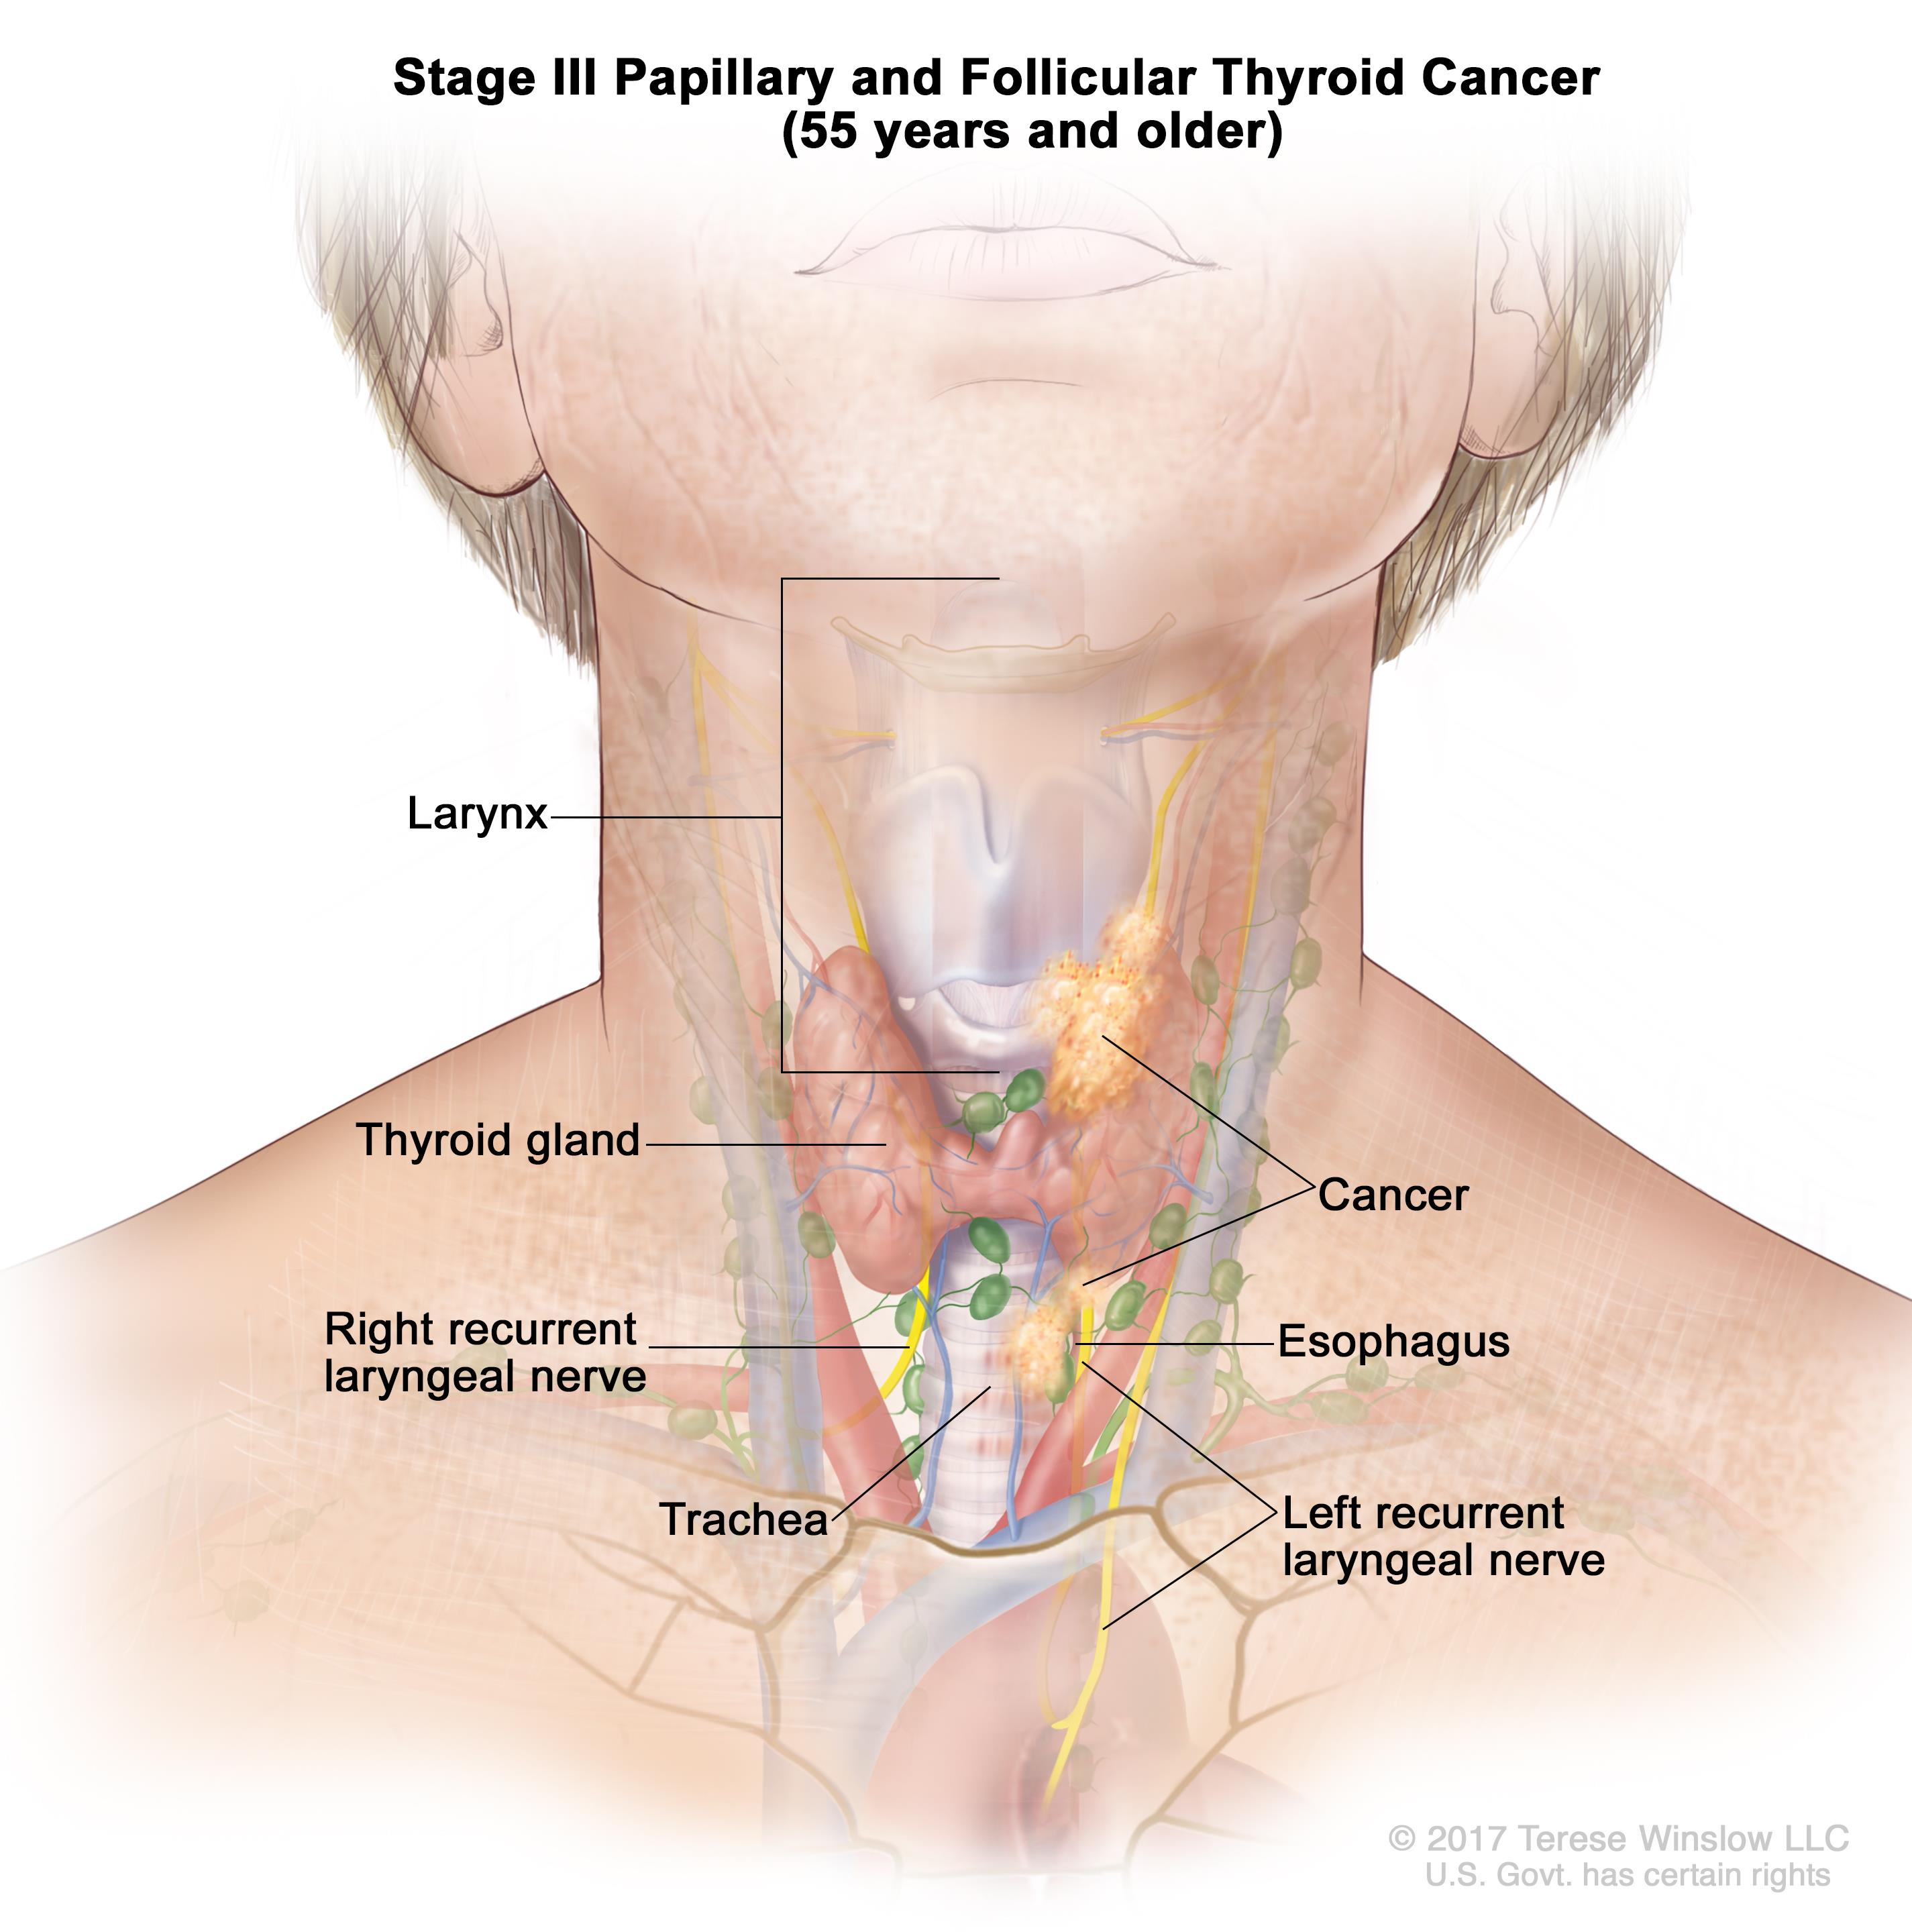 Stage III papillary and follicular thyroid cancer in patients 45 years and older; drawing shows (a) cancer in the thyroid gland and the tumor is larger than 4 centimeters; (b) cancer has spread to tissues just outside the thyroid gland; and (c) cancer has spread to lymph nodes near the trachea. Also shown is the larynx.